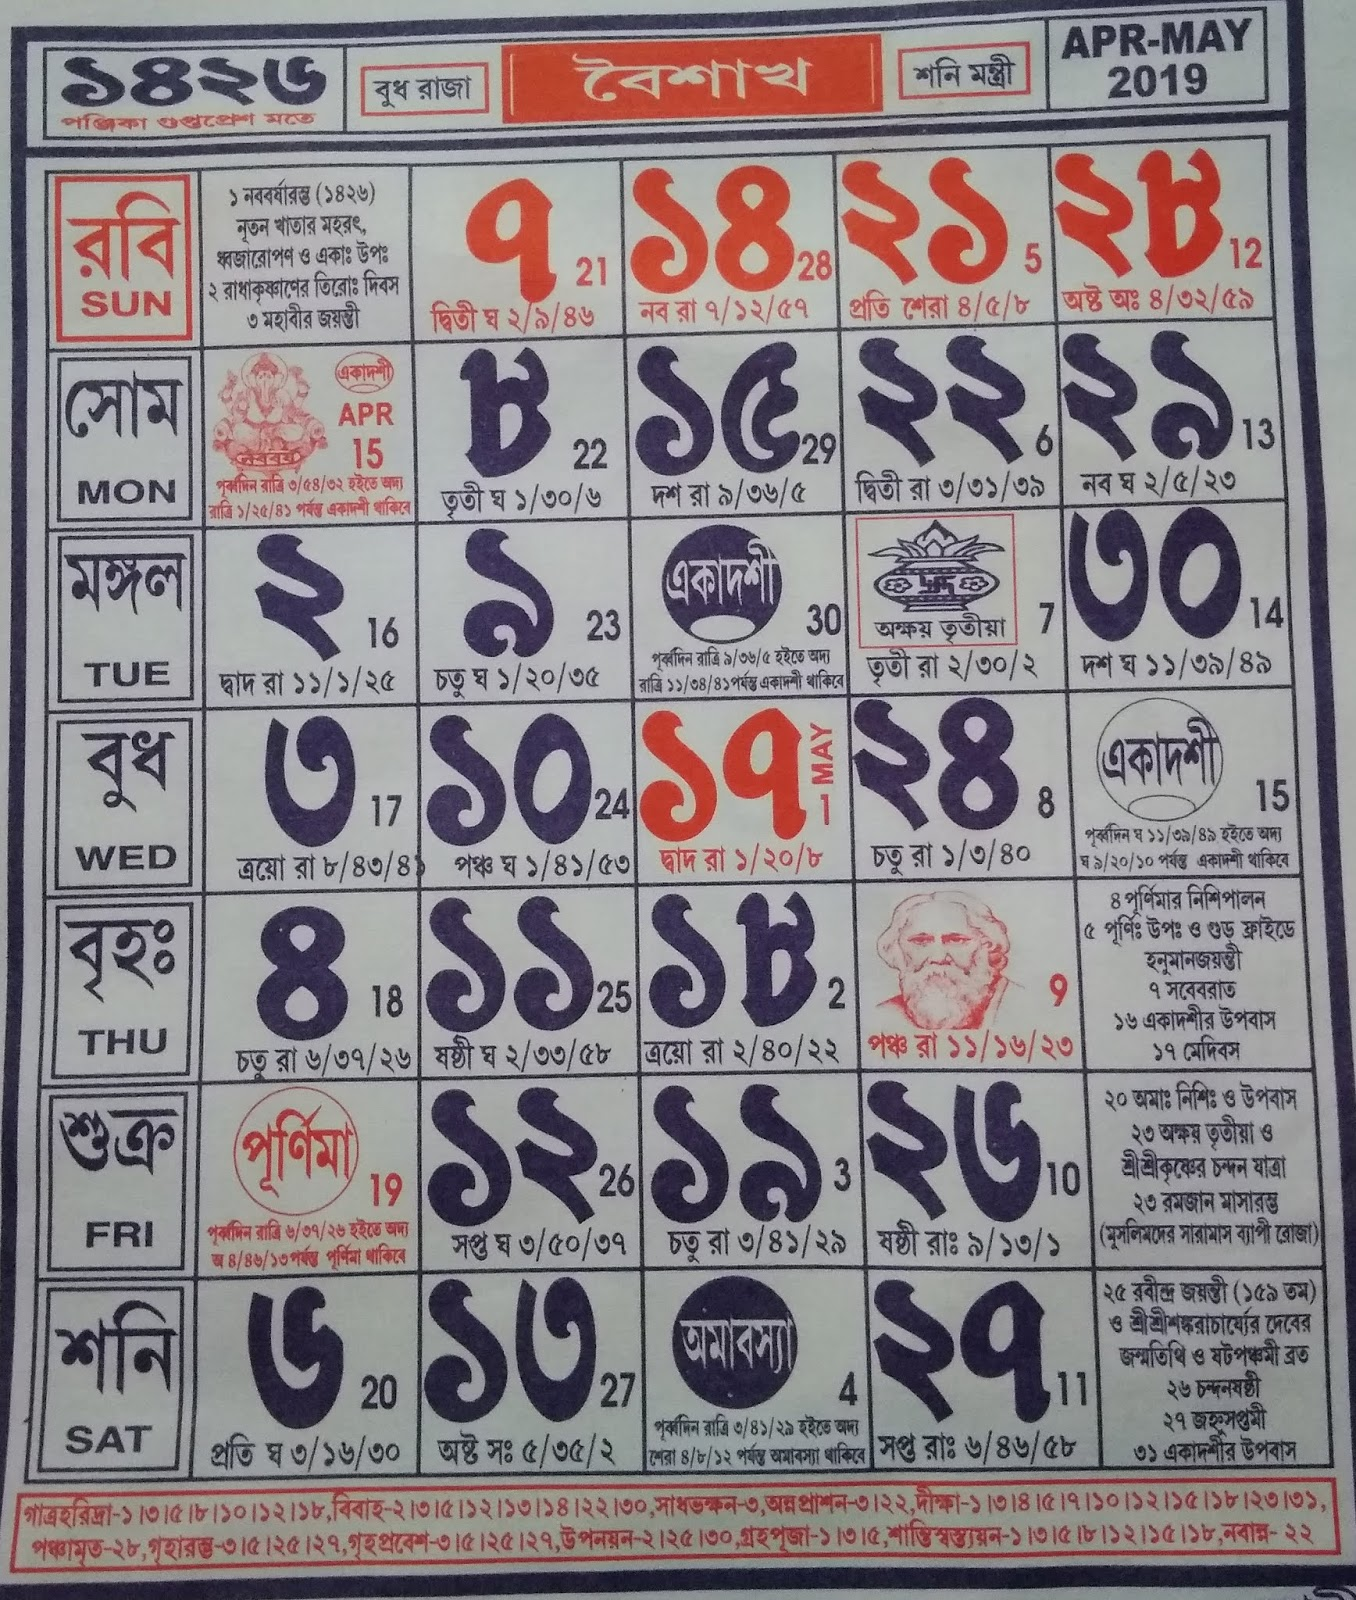 Bengali Calendar 1426 (2019-2020) - West Bengal and Kolkata